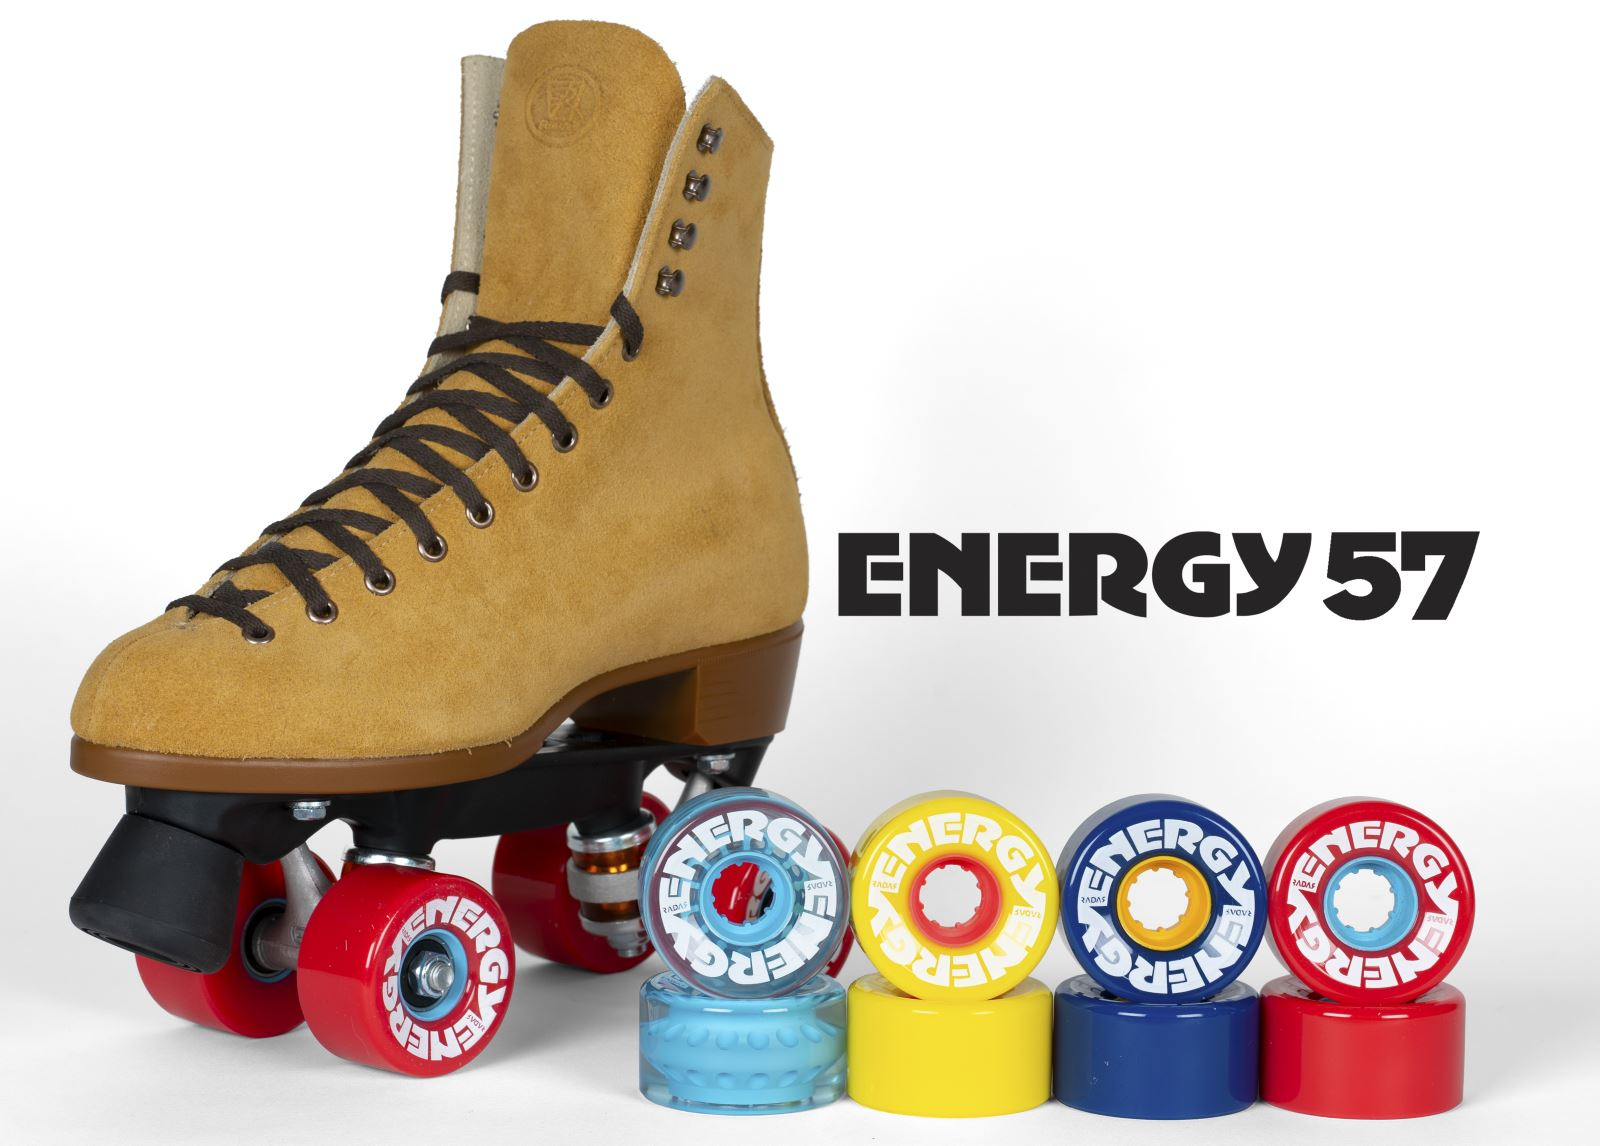 Radar Energy 57 Outdoor Roller Skate Wheels